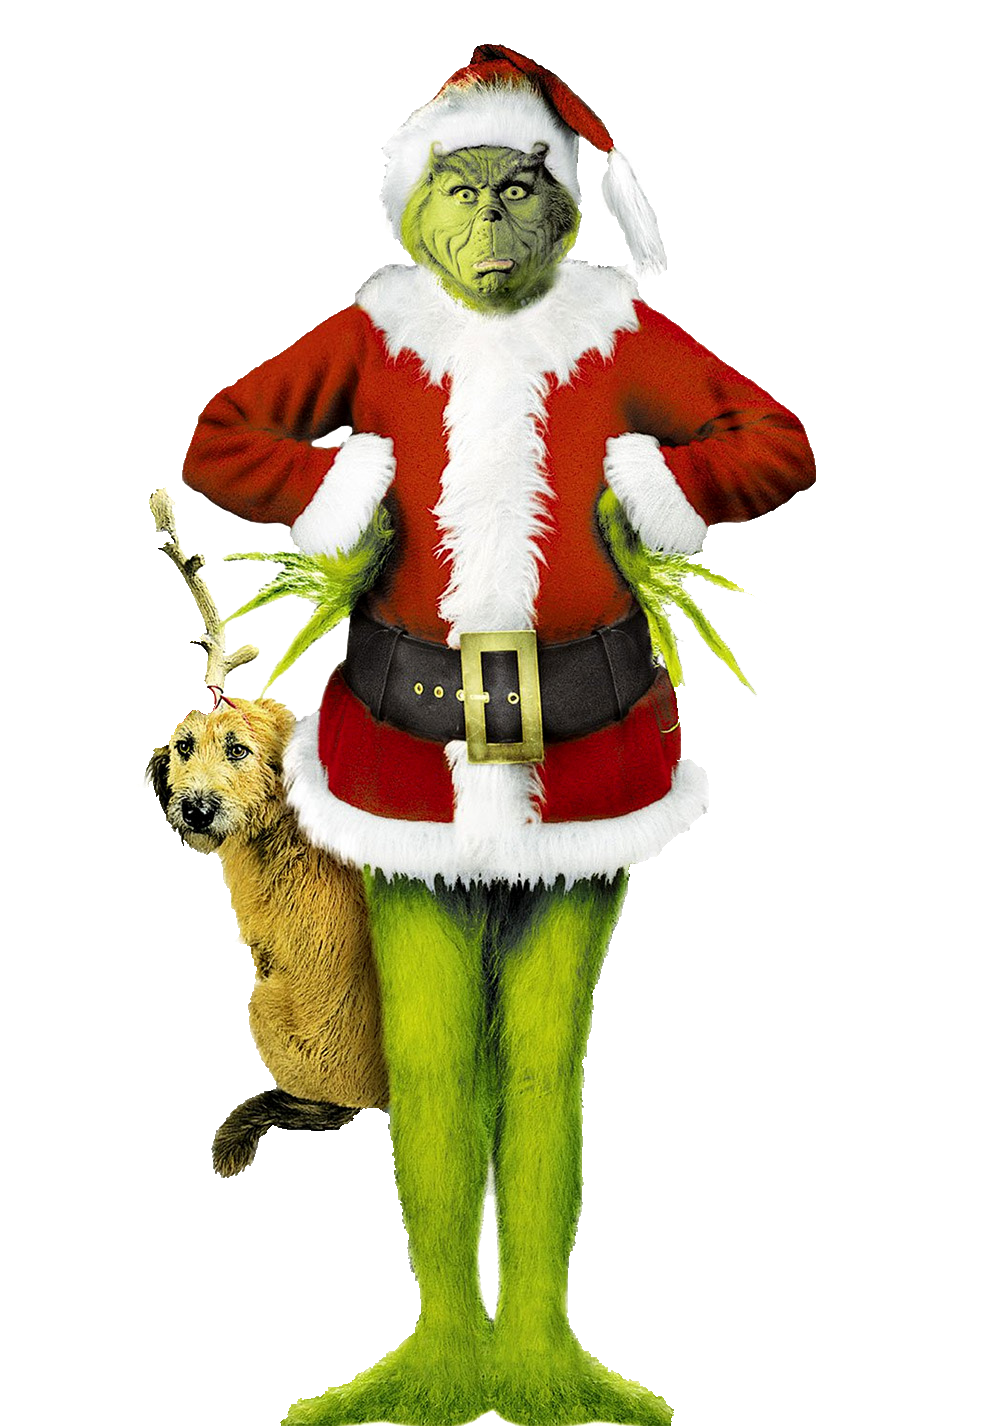 The grinch png. Images download